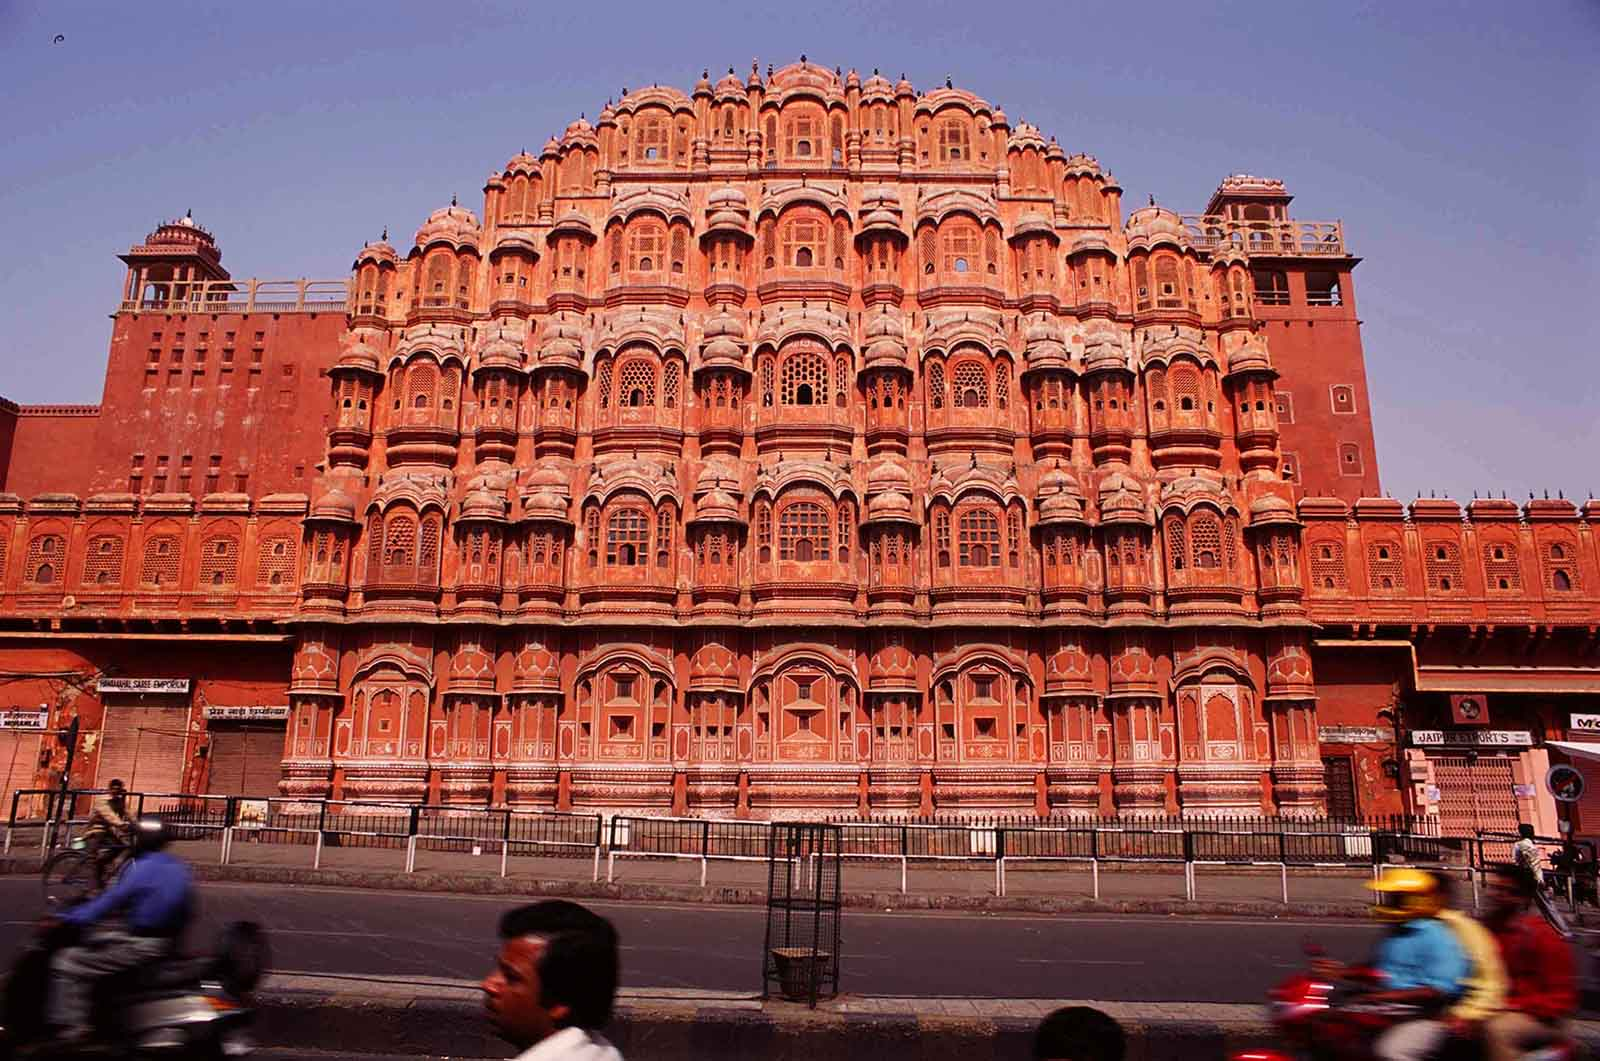 1. Jaipur Sightseeing Day Tour in a Private Car